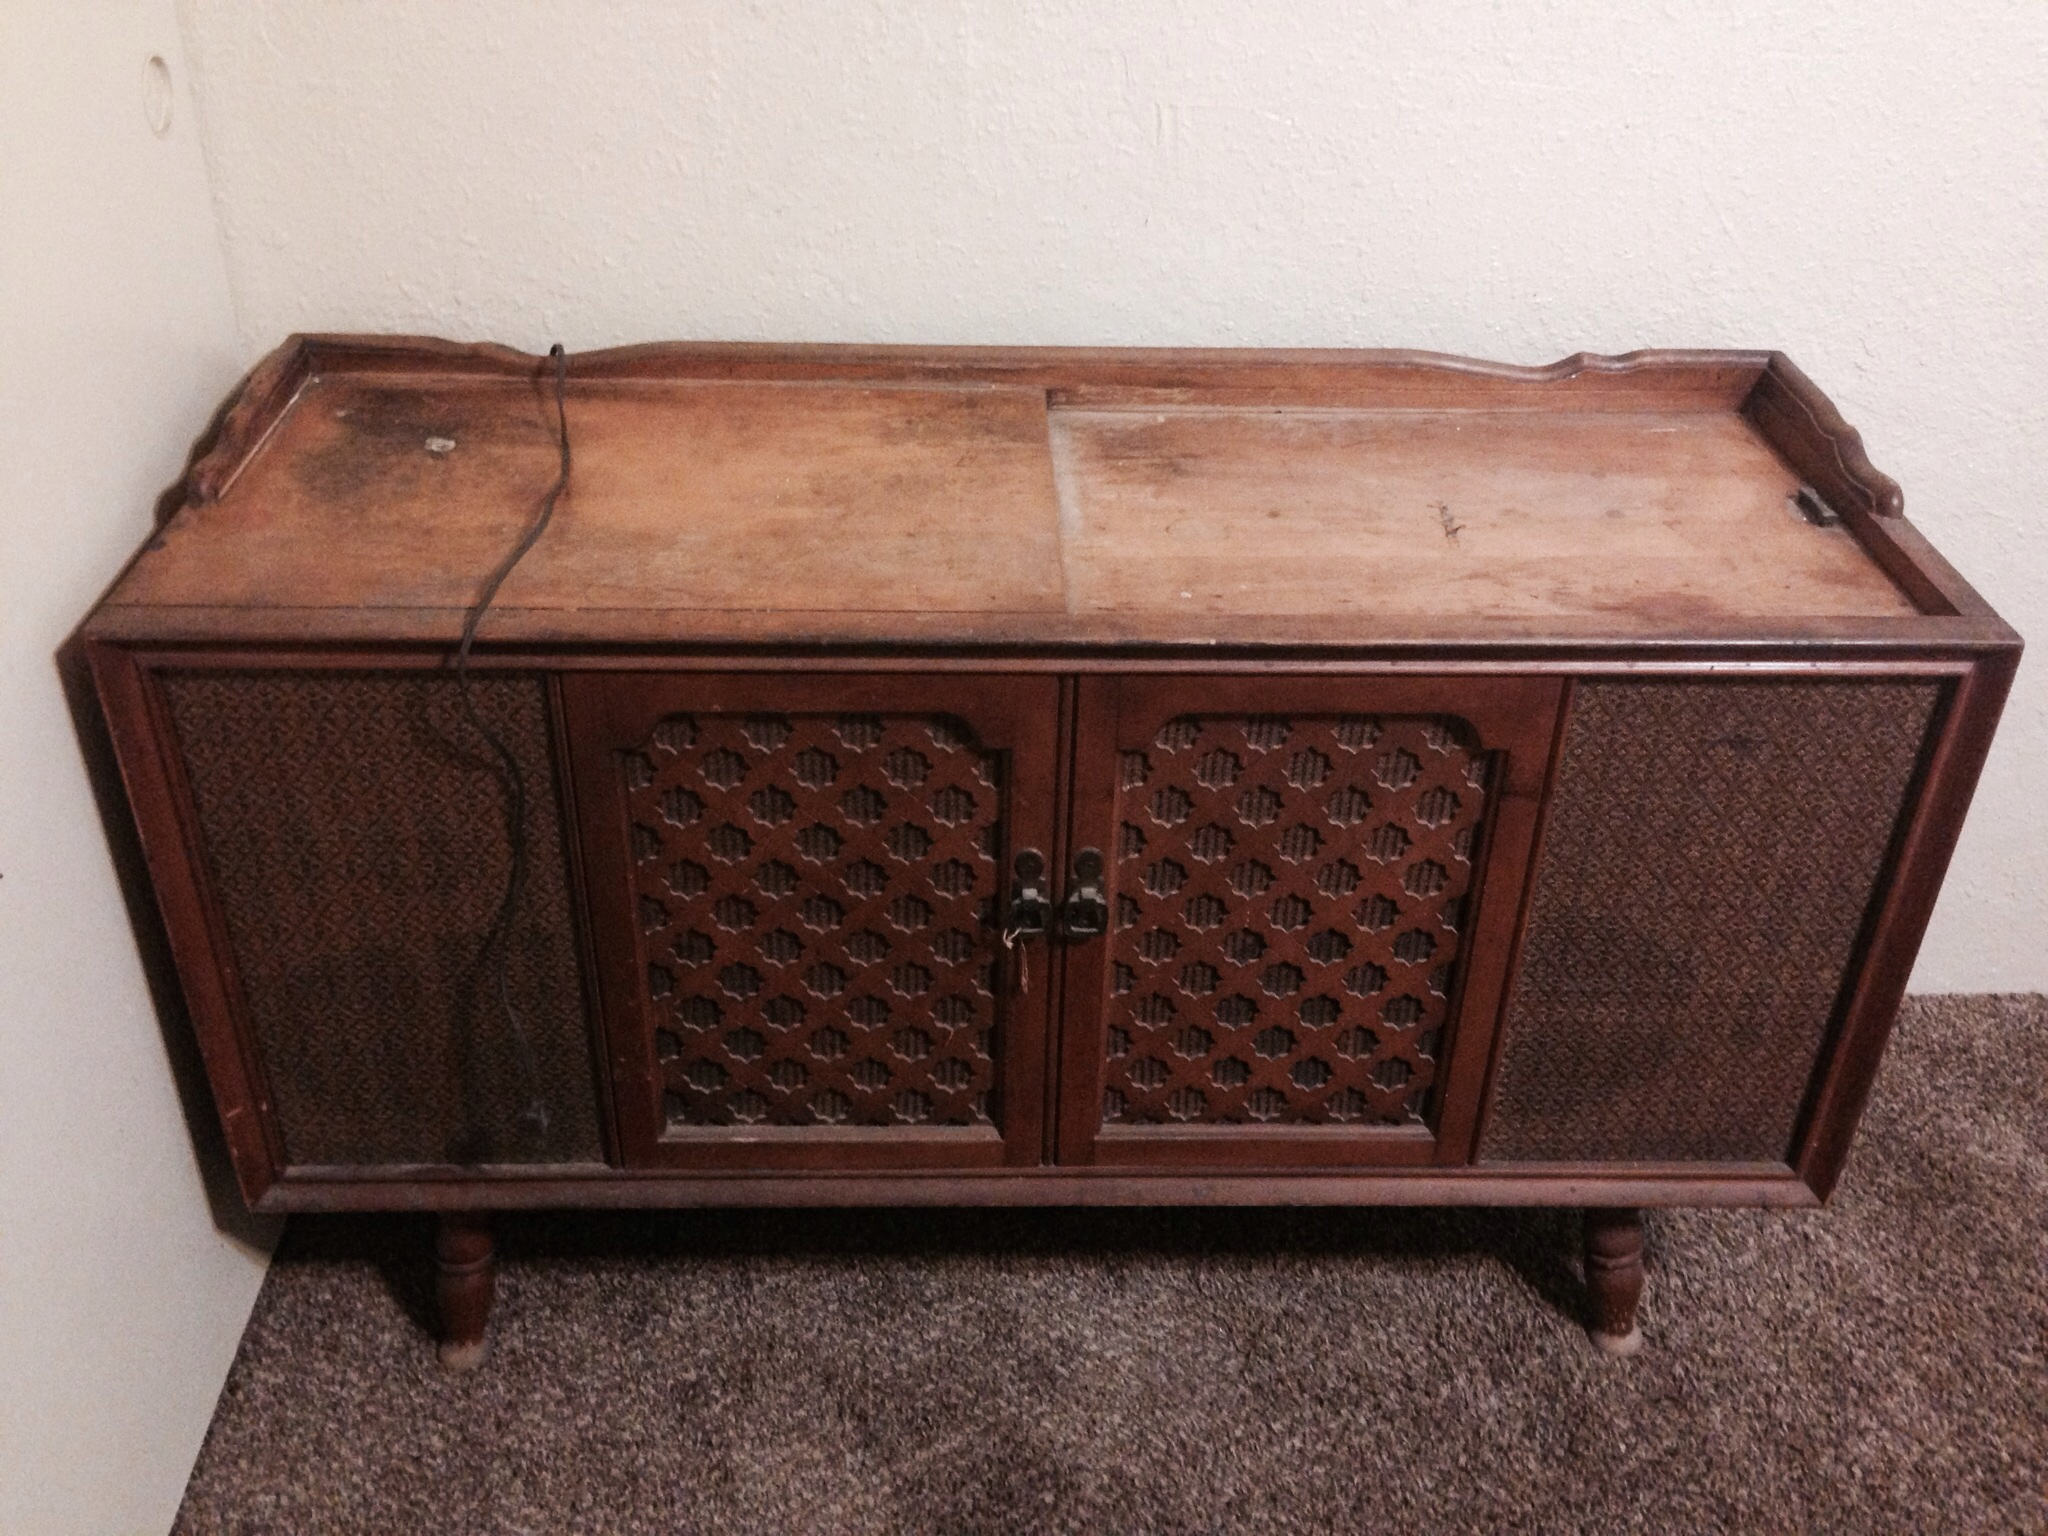 Rca Victrola Record Player Cabinet | MF Cabinets